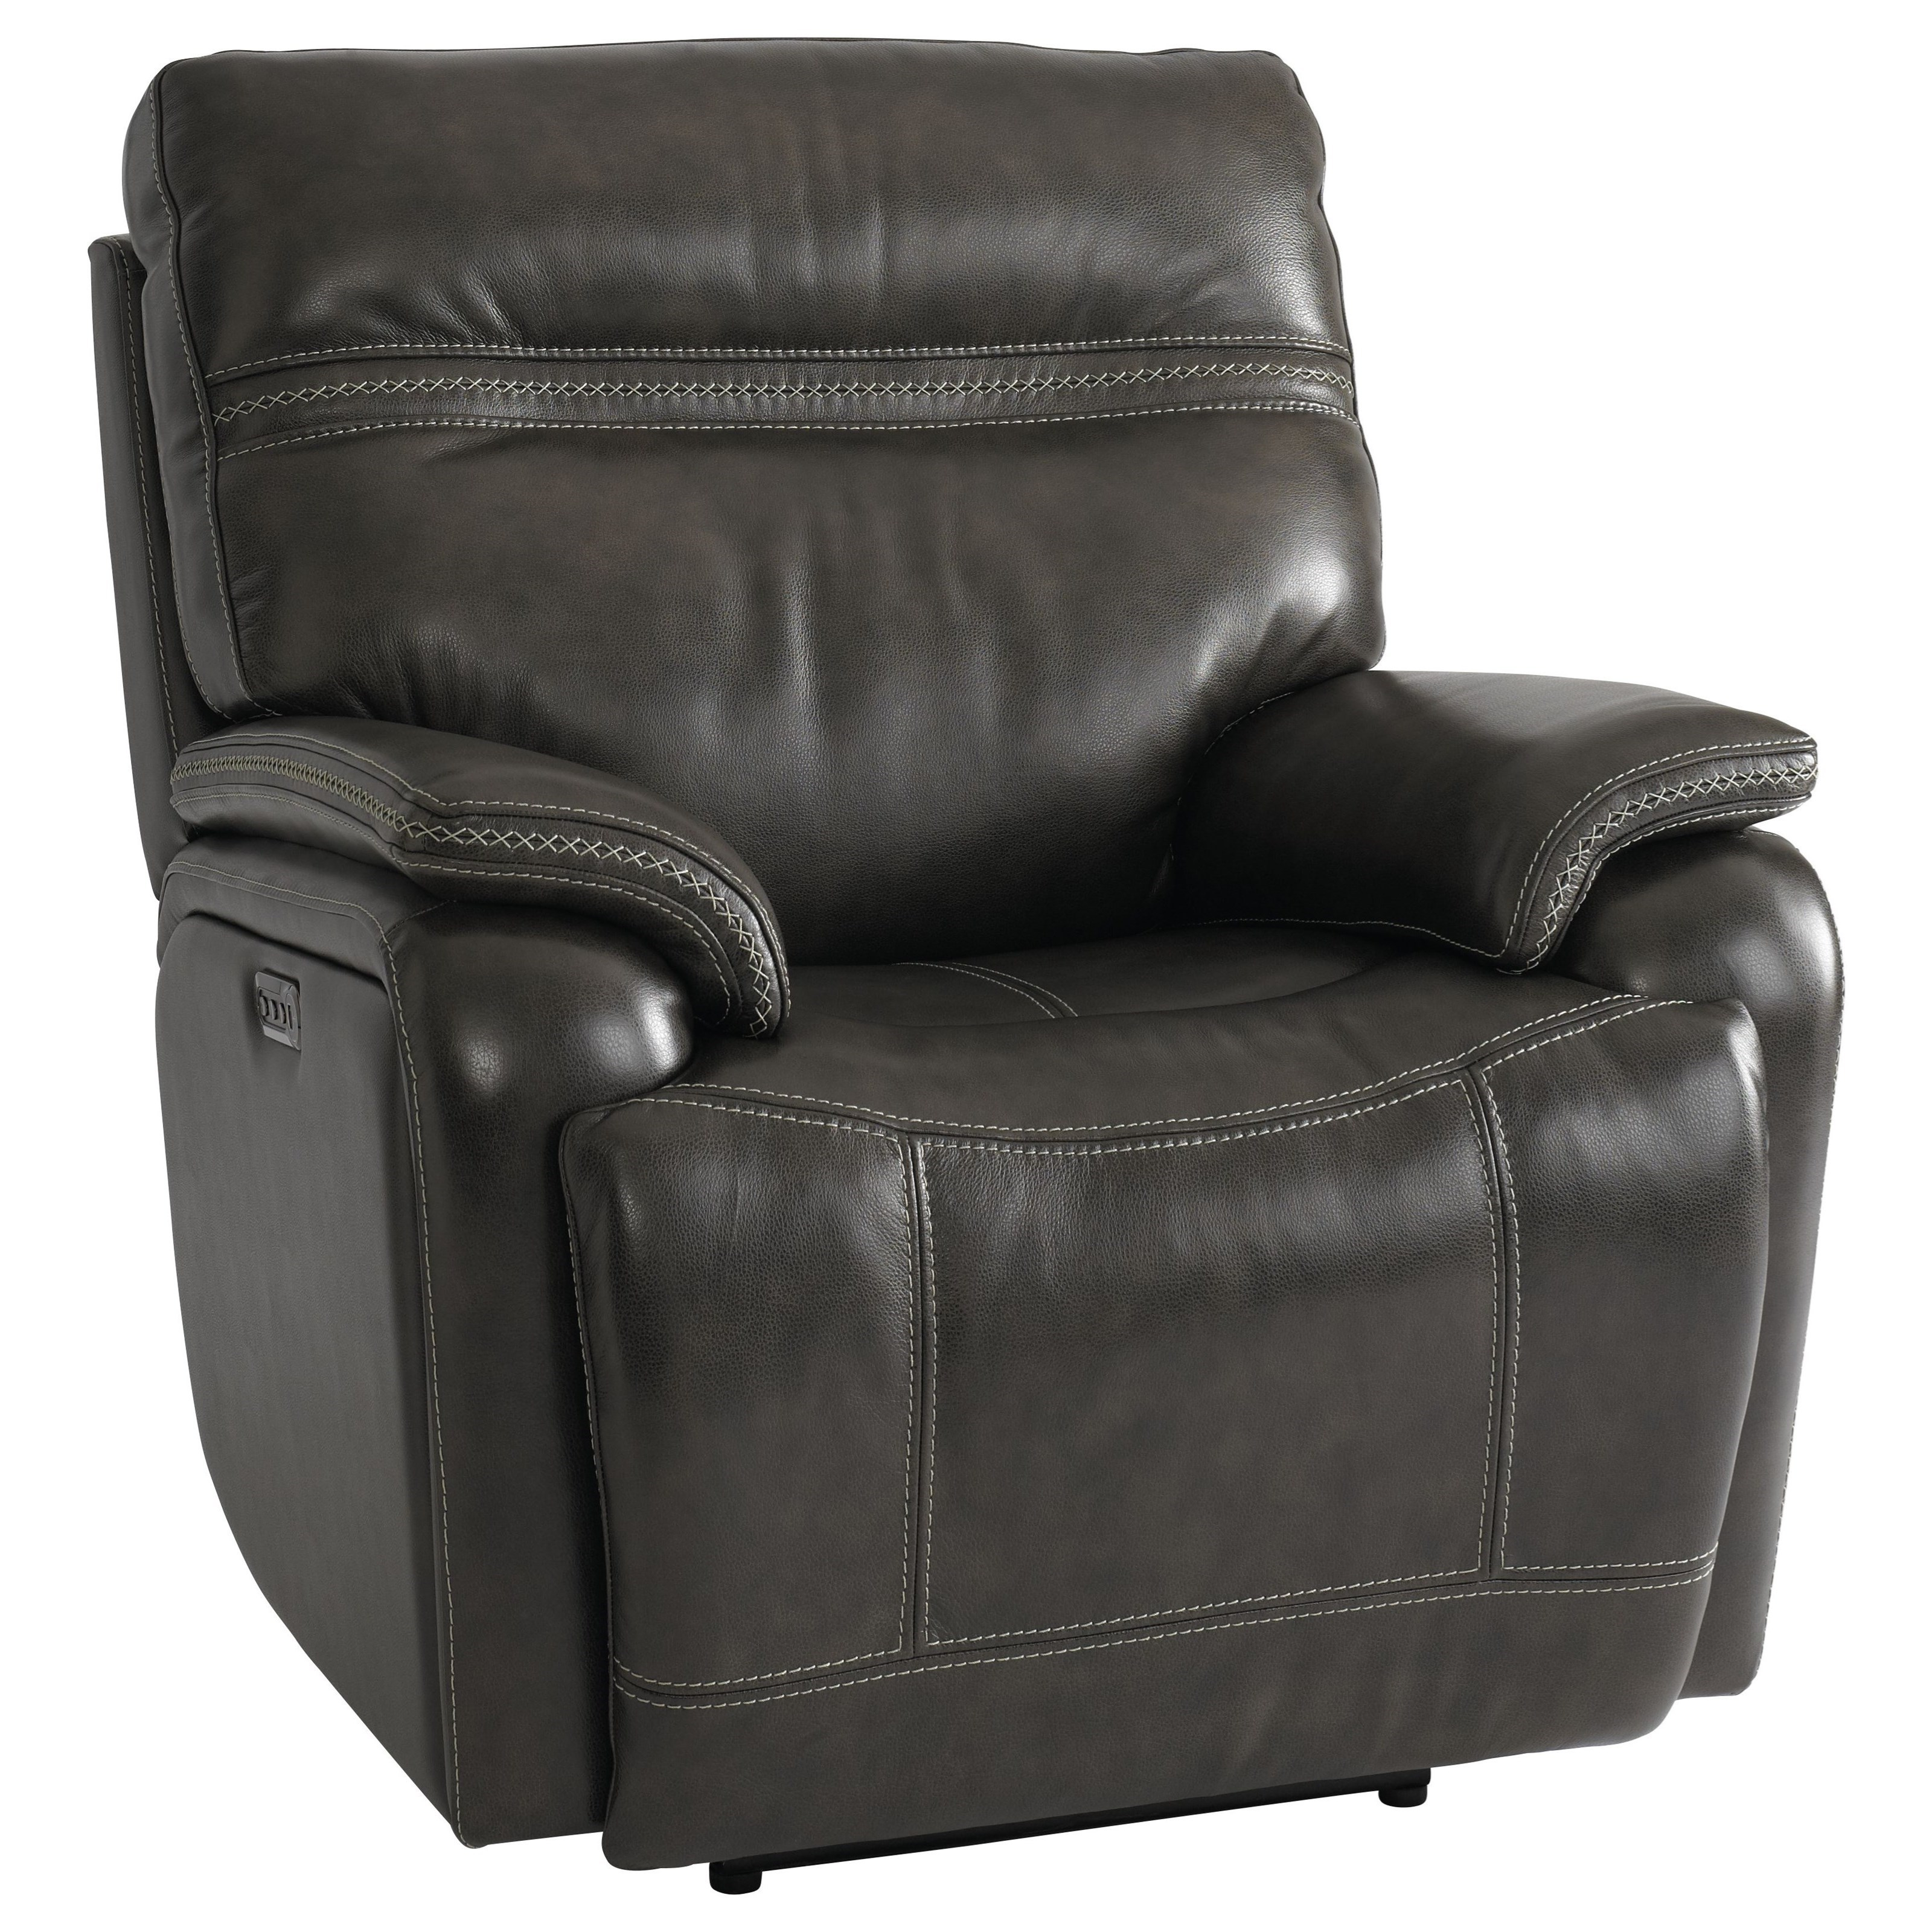 Bassett Club Level Grant Casual Power Wallsaver Recliner With Power Headrest Lumbar And Usb Port Wilcox Furniture Recliners